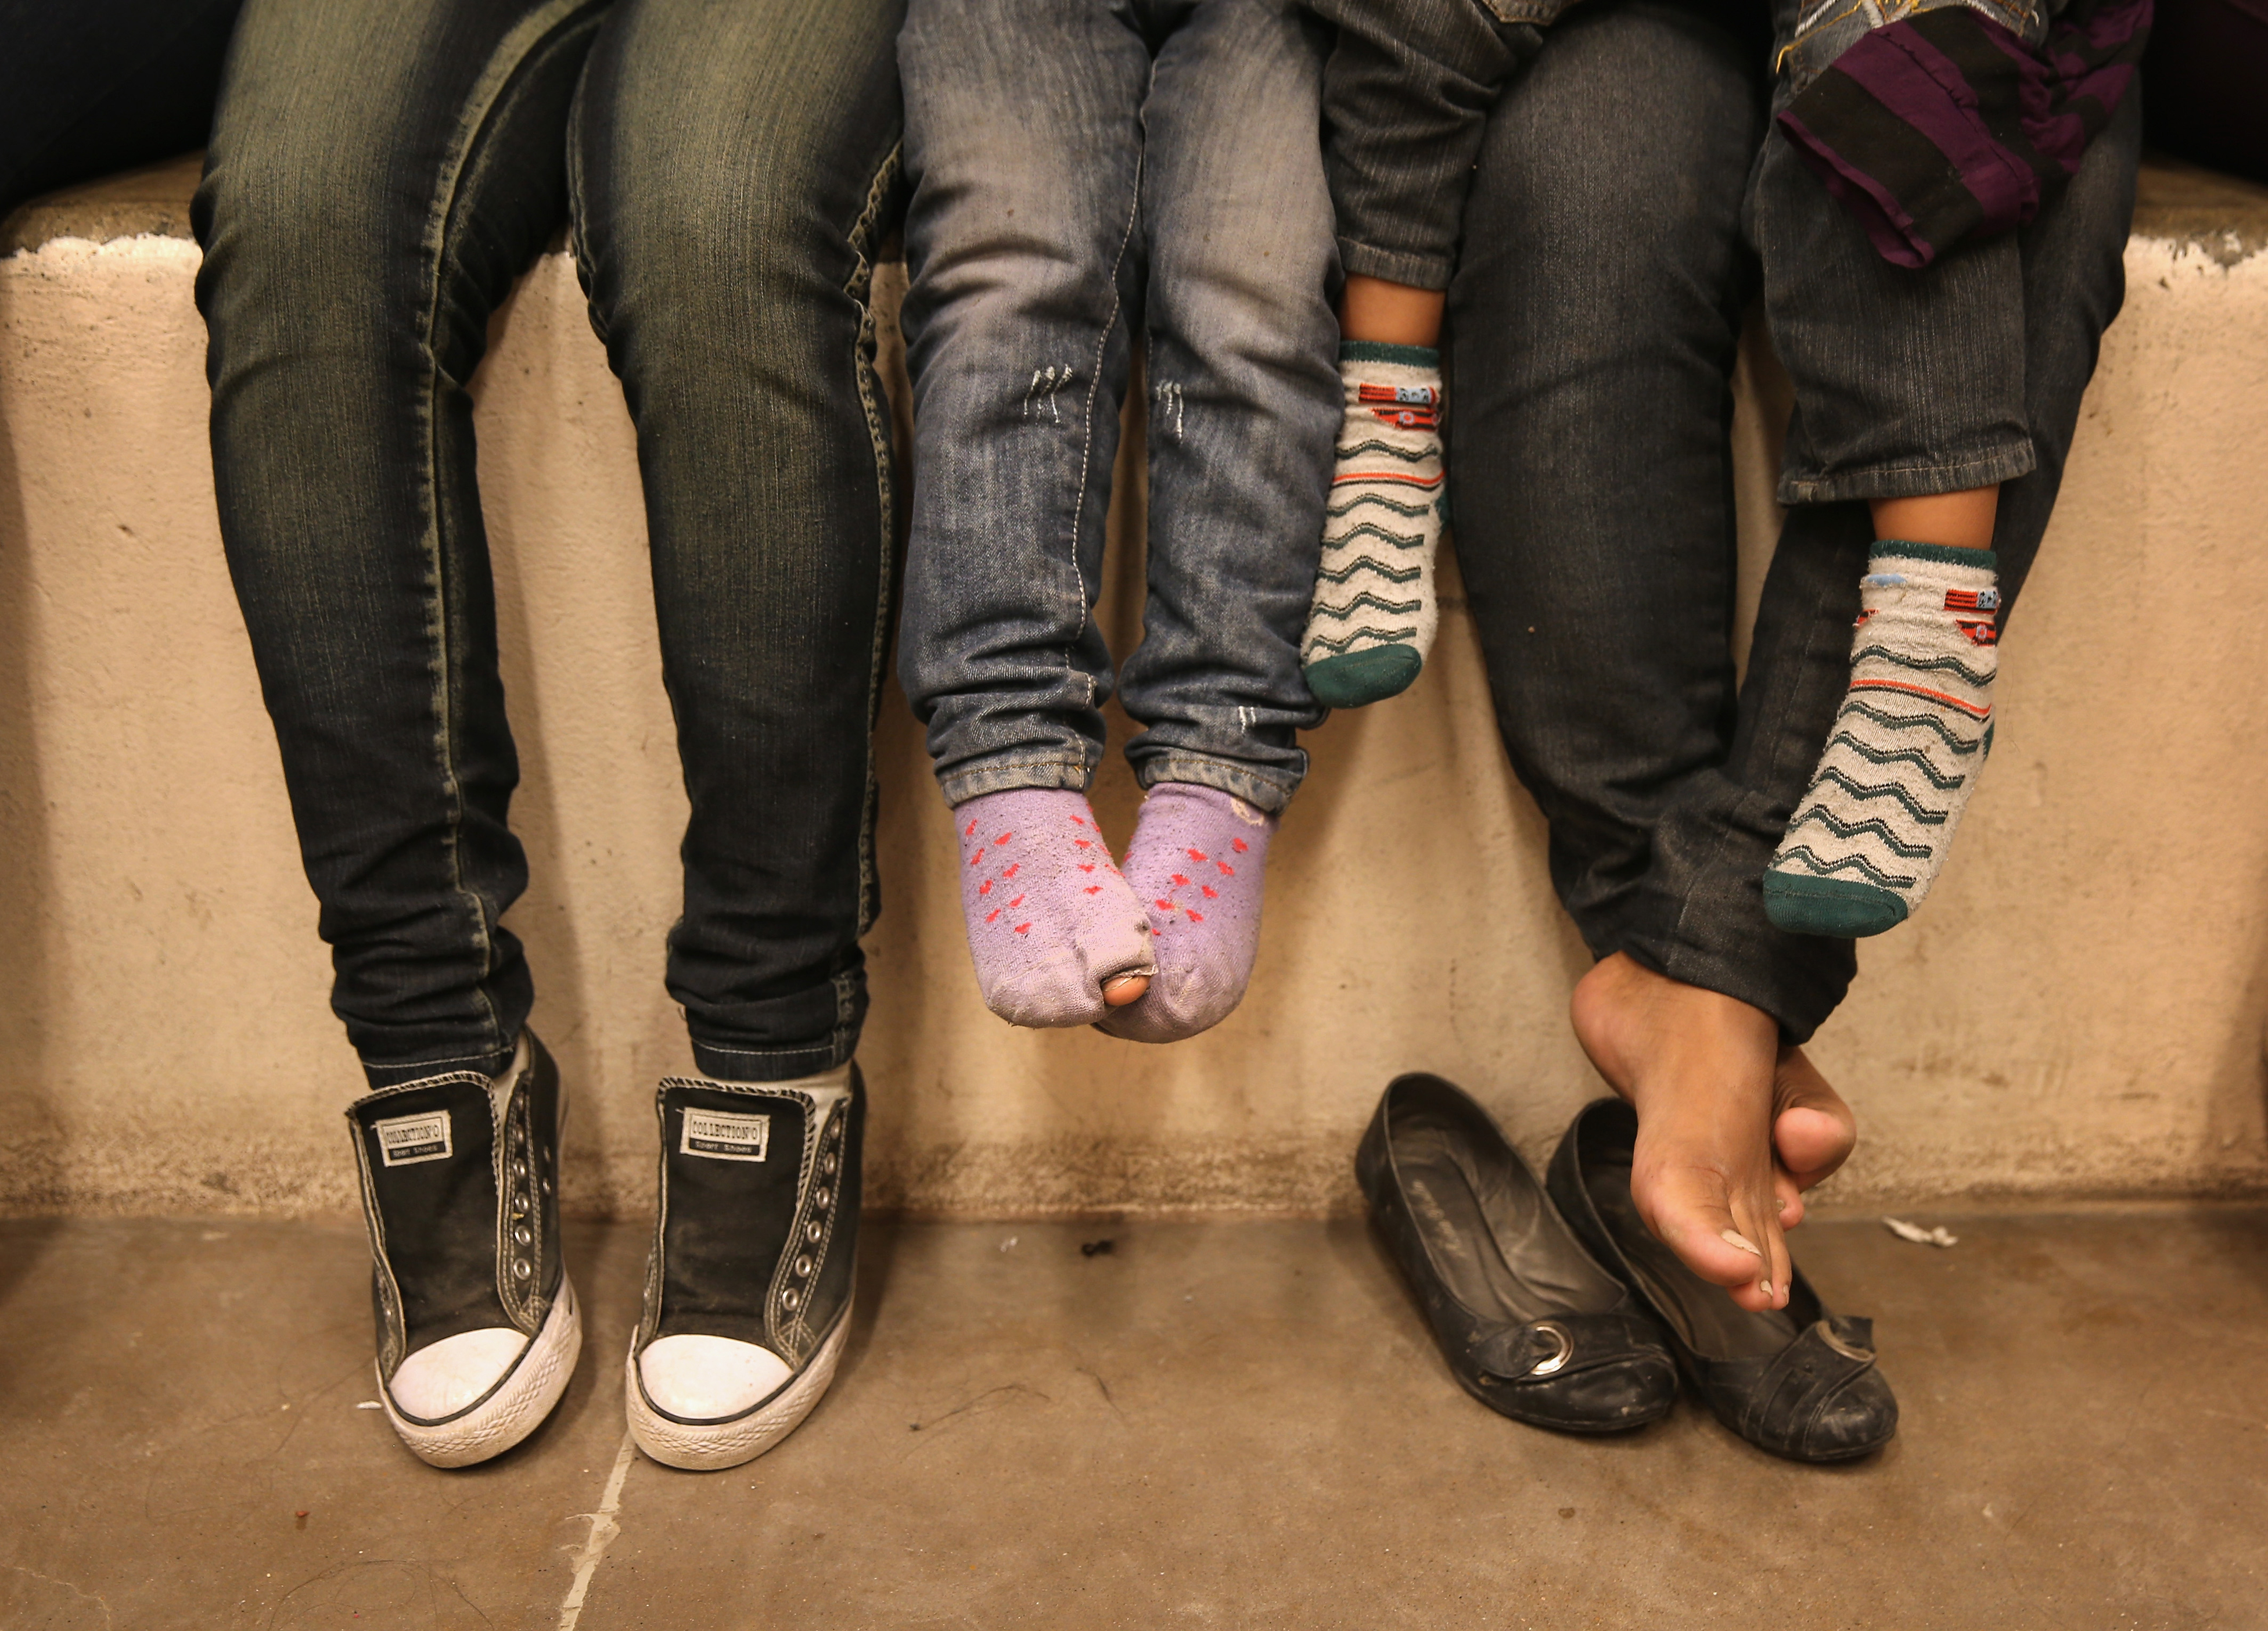 Women and children sit in a holding cell at a U.S. Border Patrol processing center after being detained by agents near the U.S.-Mexico border near McAllen, Texas on Sept. 8, 2014.